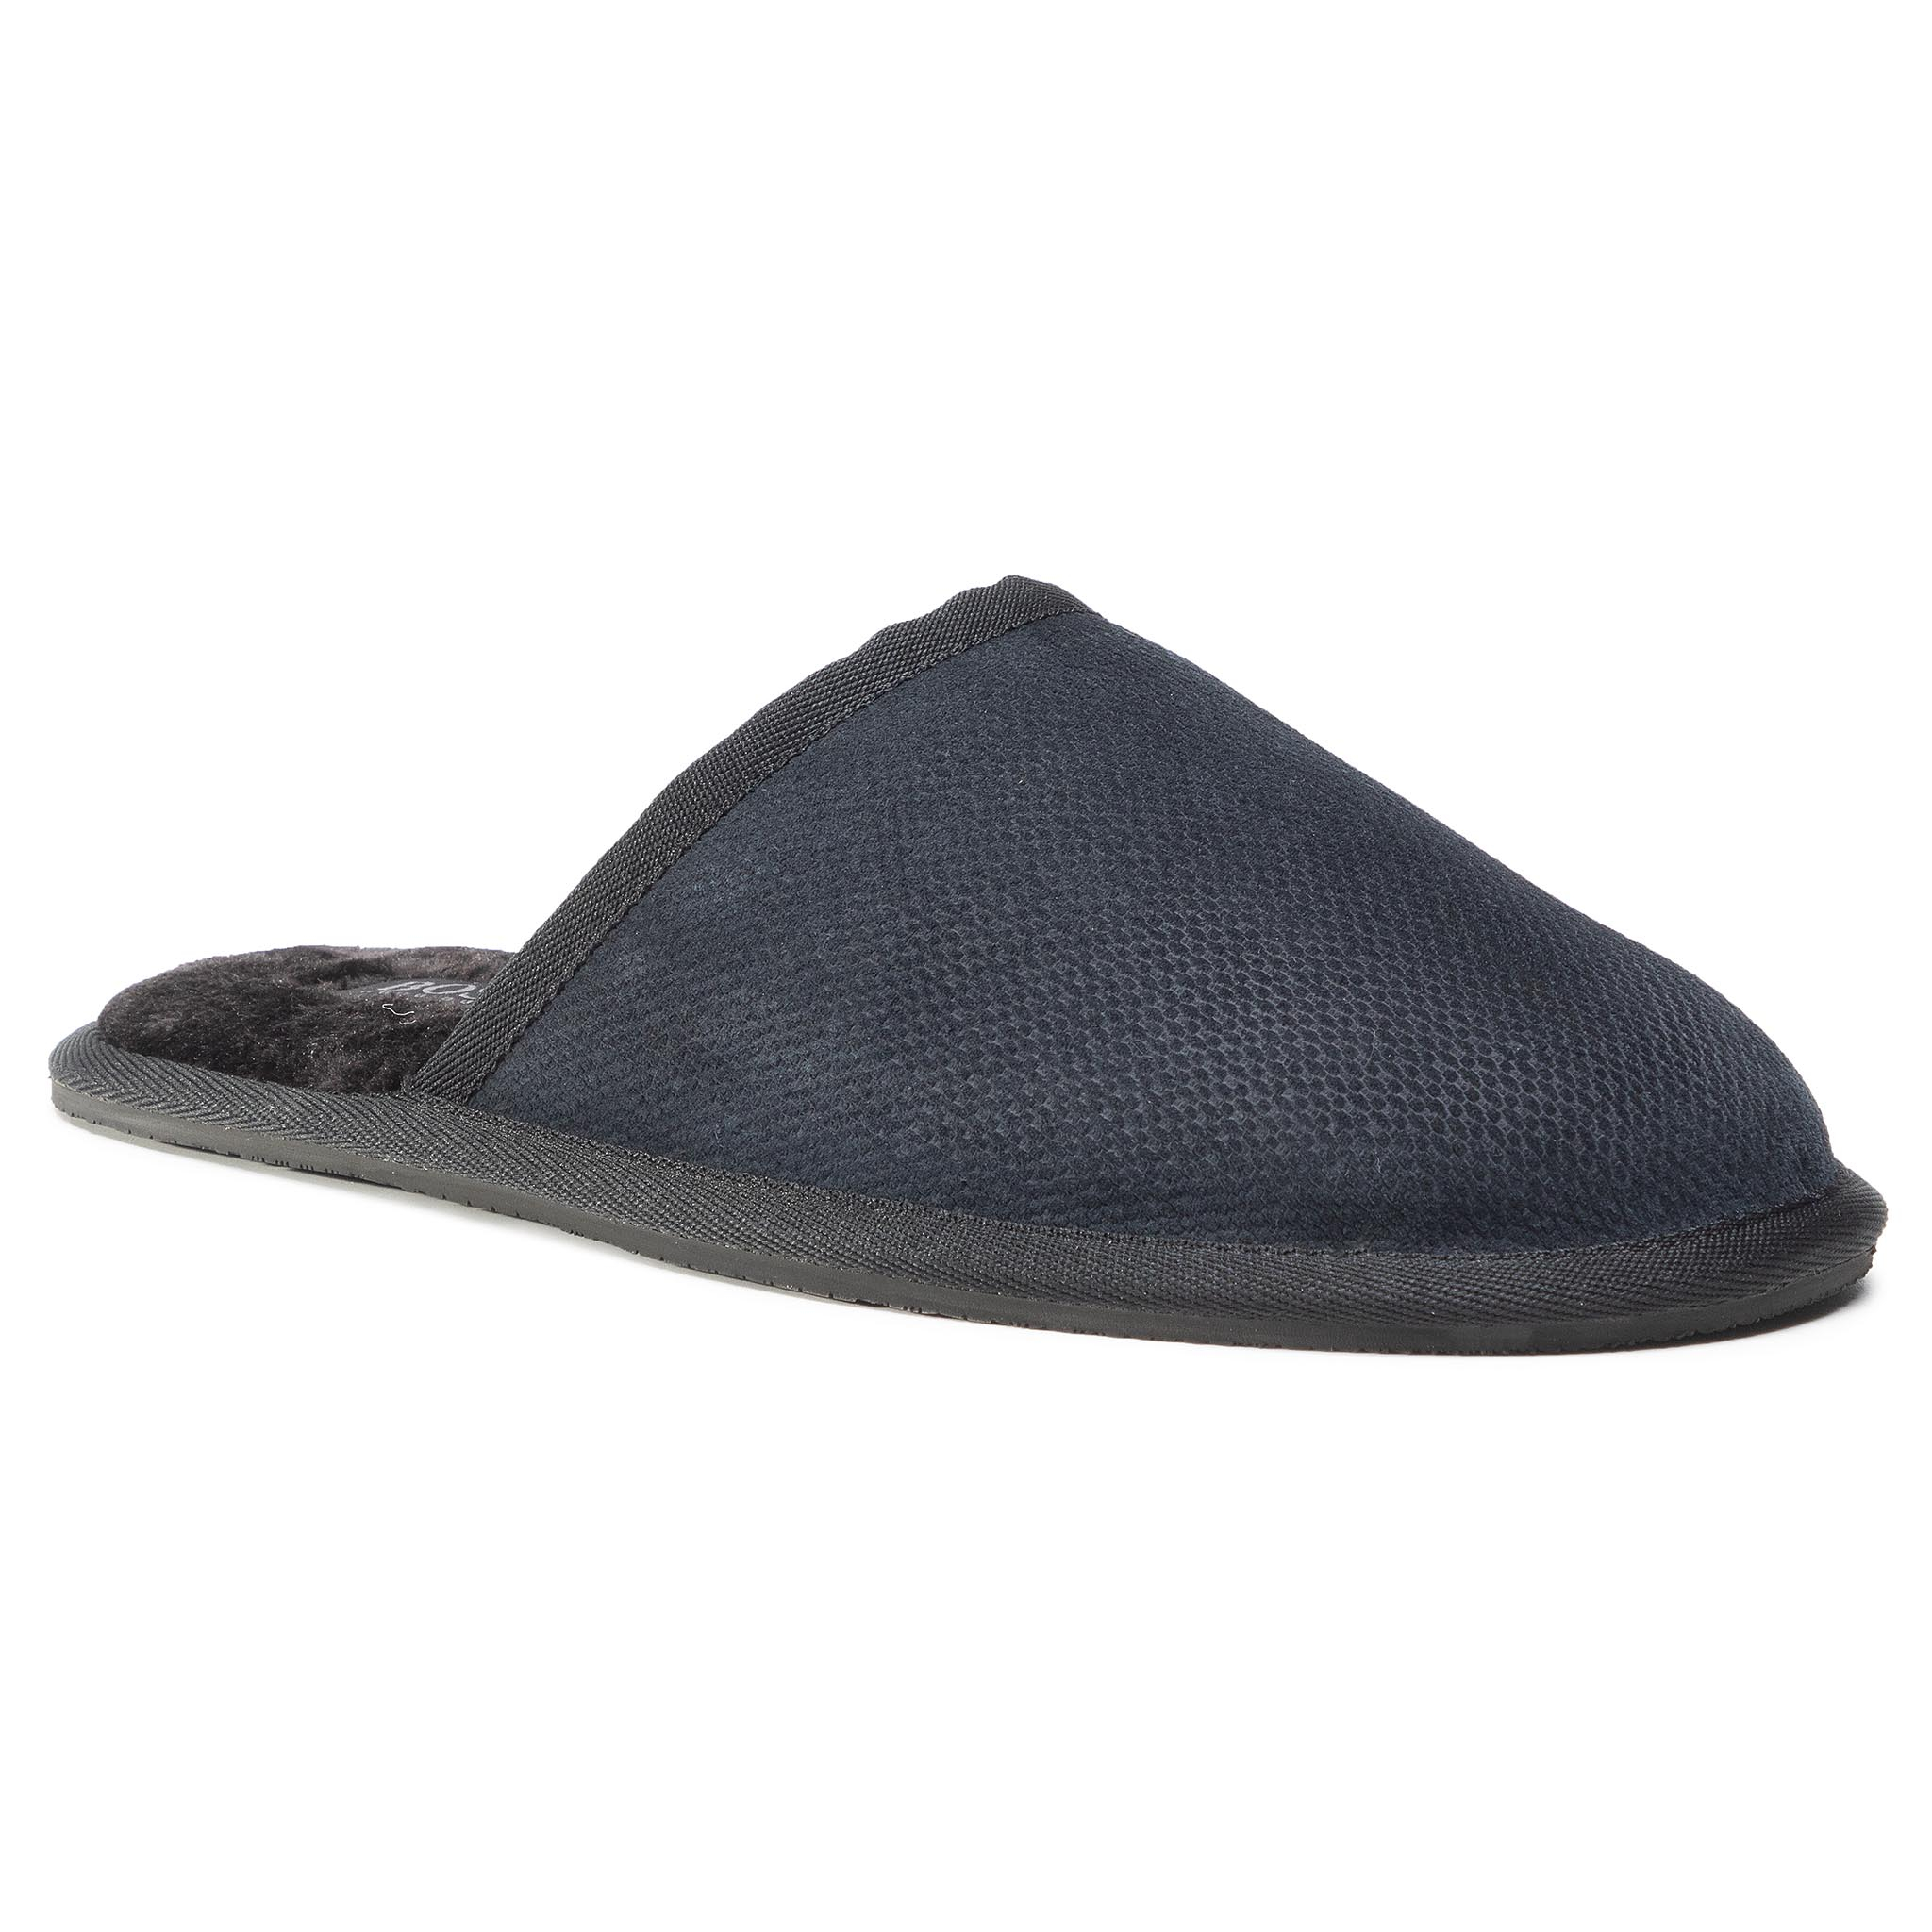 Pantuflas BOSS - Home 50445700 10232567 01 Dark Blue 401